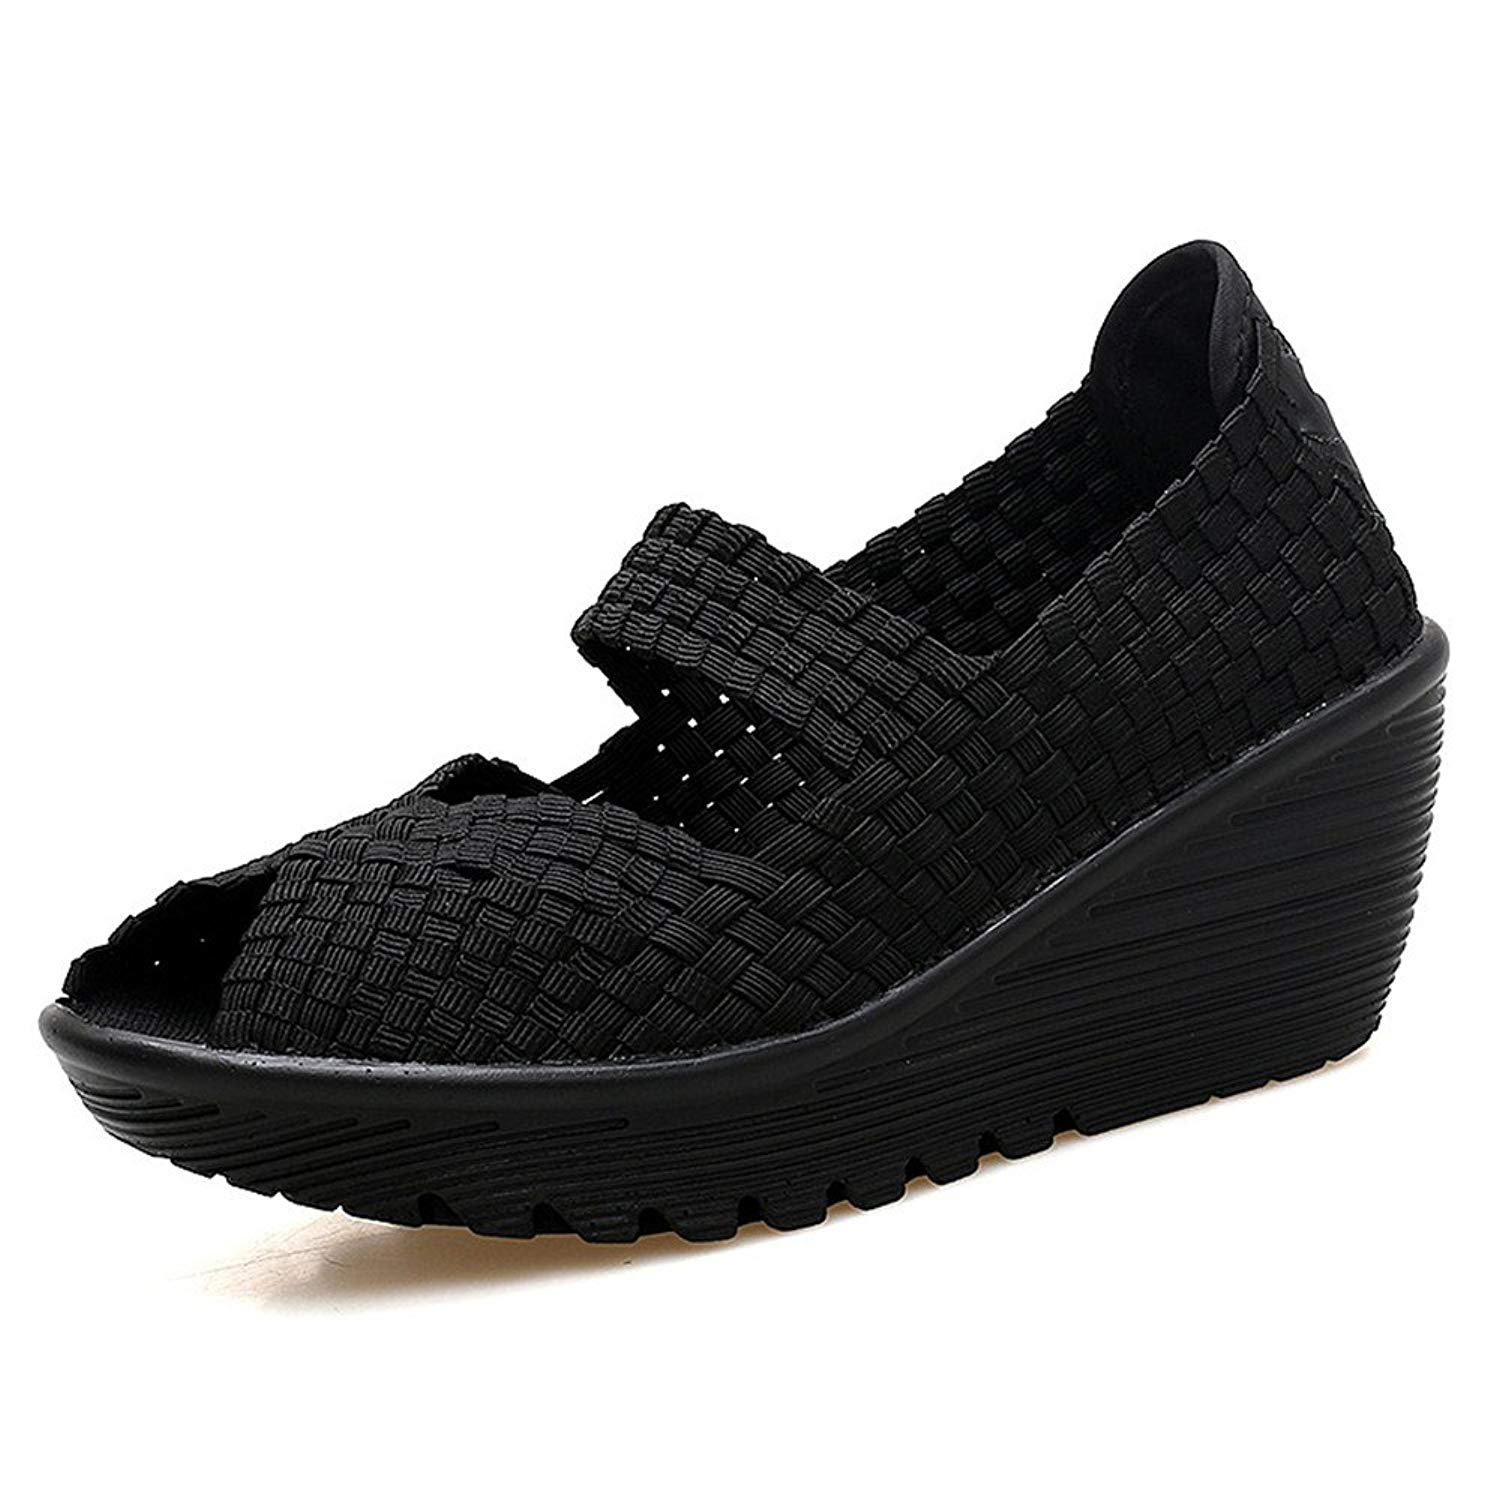 Breathable a Pedal Shoes Women's Thick-Soled Non-Slip Rocking Shoes(Black 39/8.5 B(M) US Women)